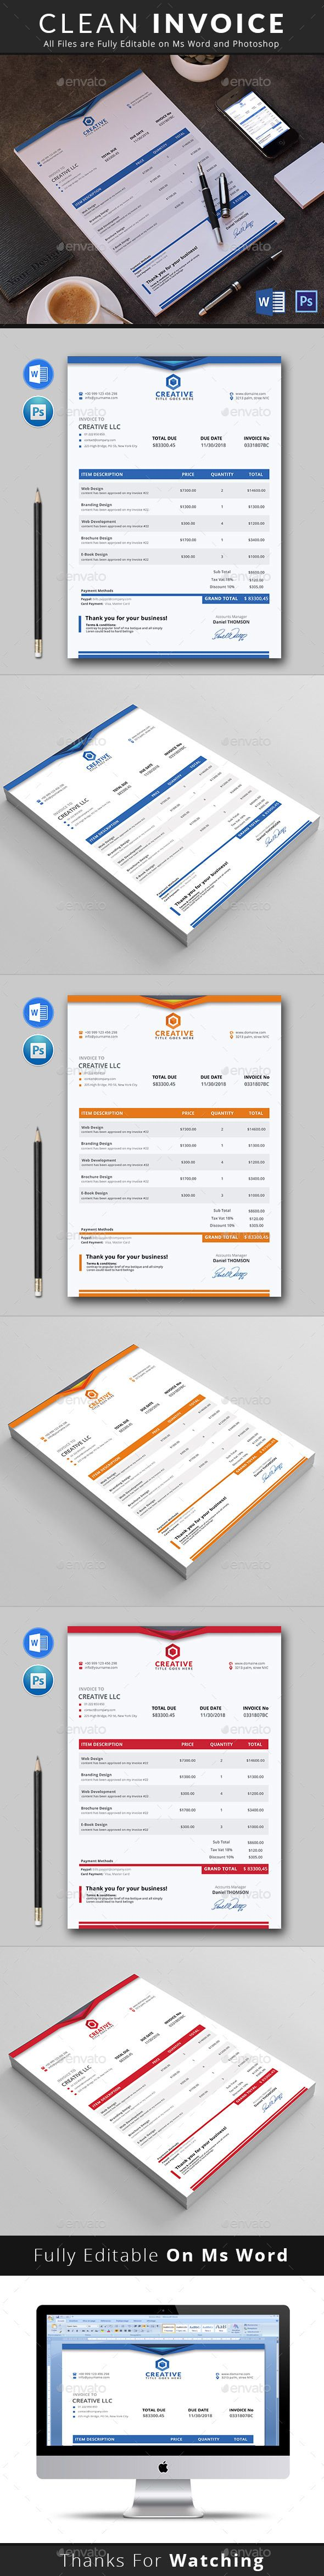 construction proposal templates%0A  Invoice  Proposals  u     Invoices  Stationery